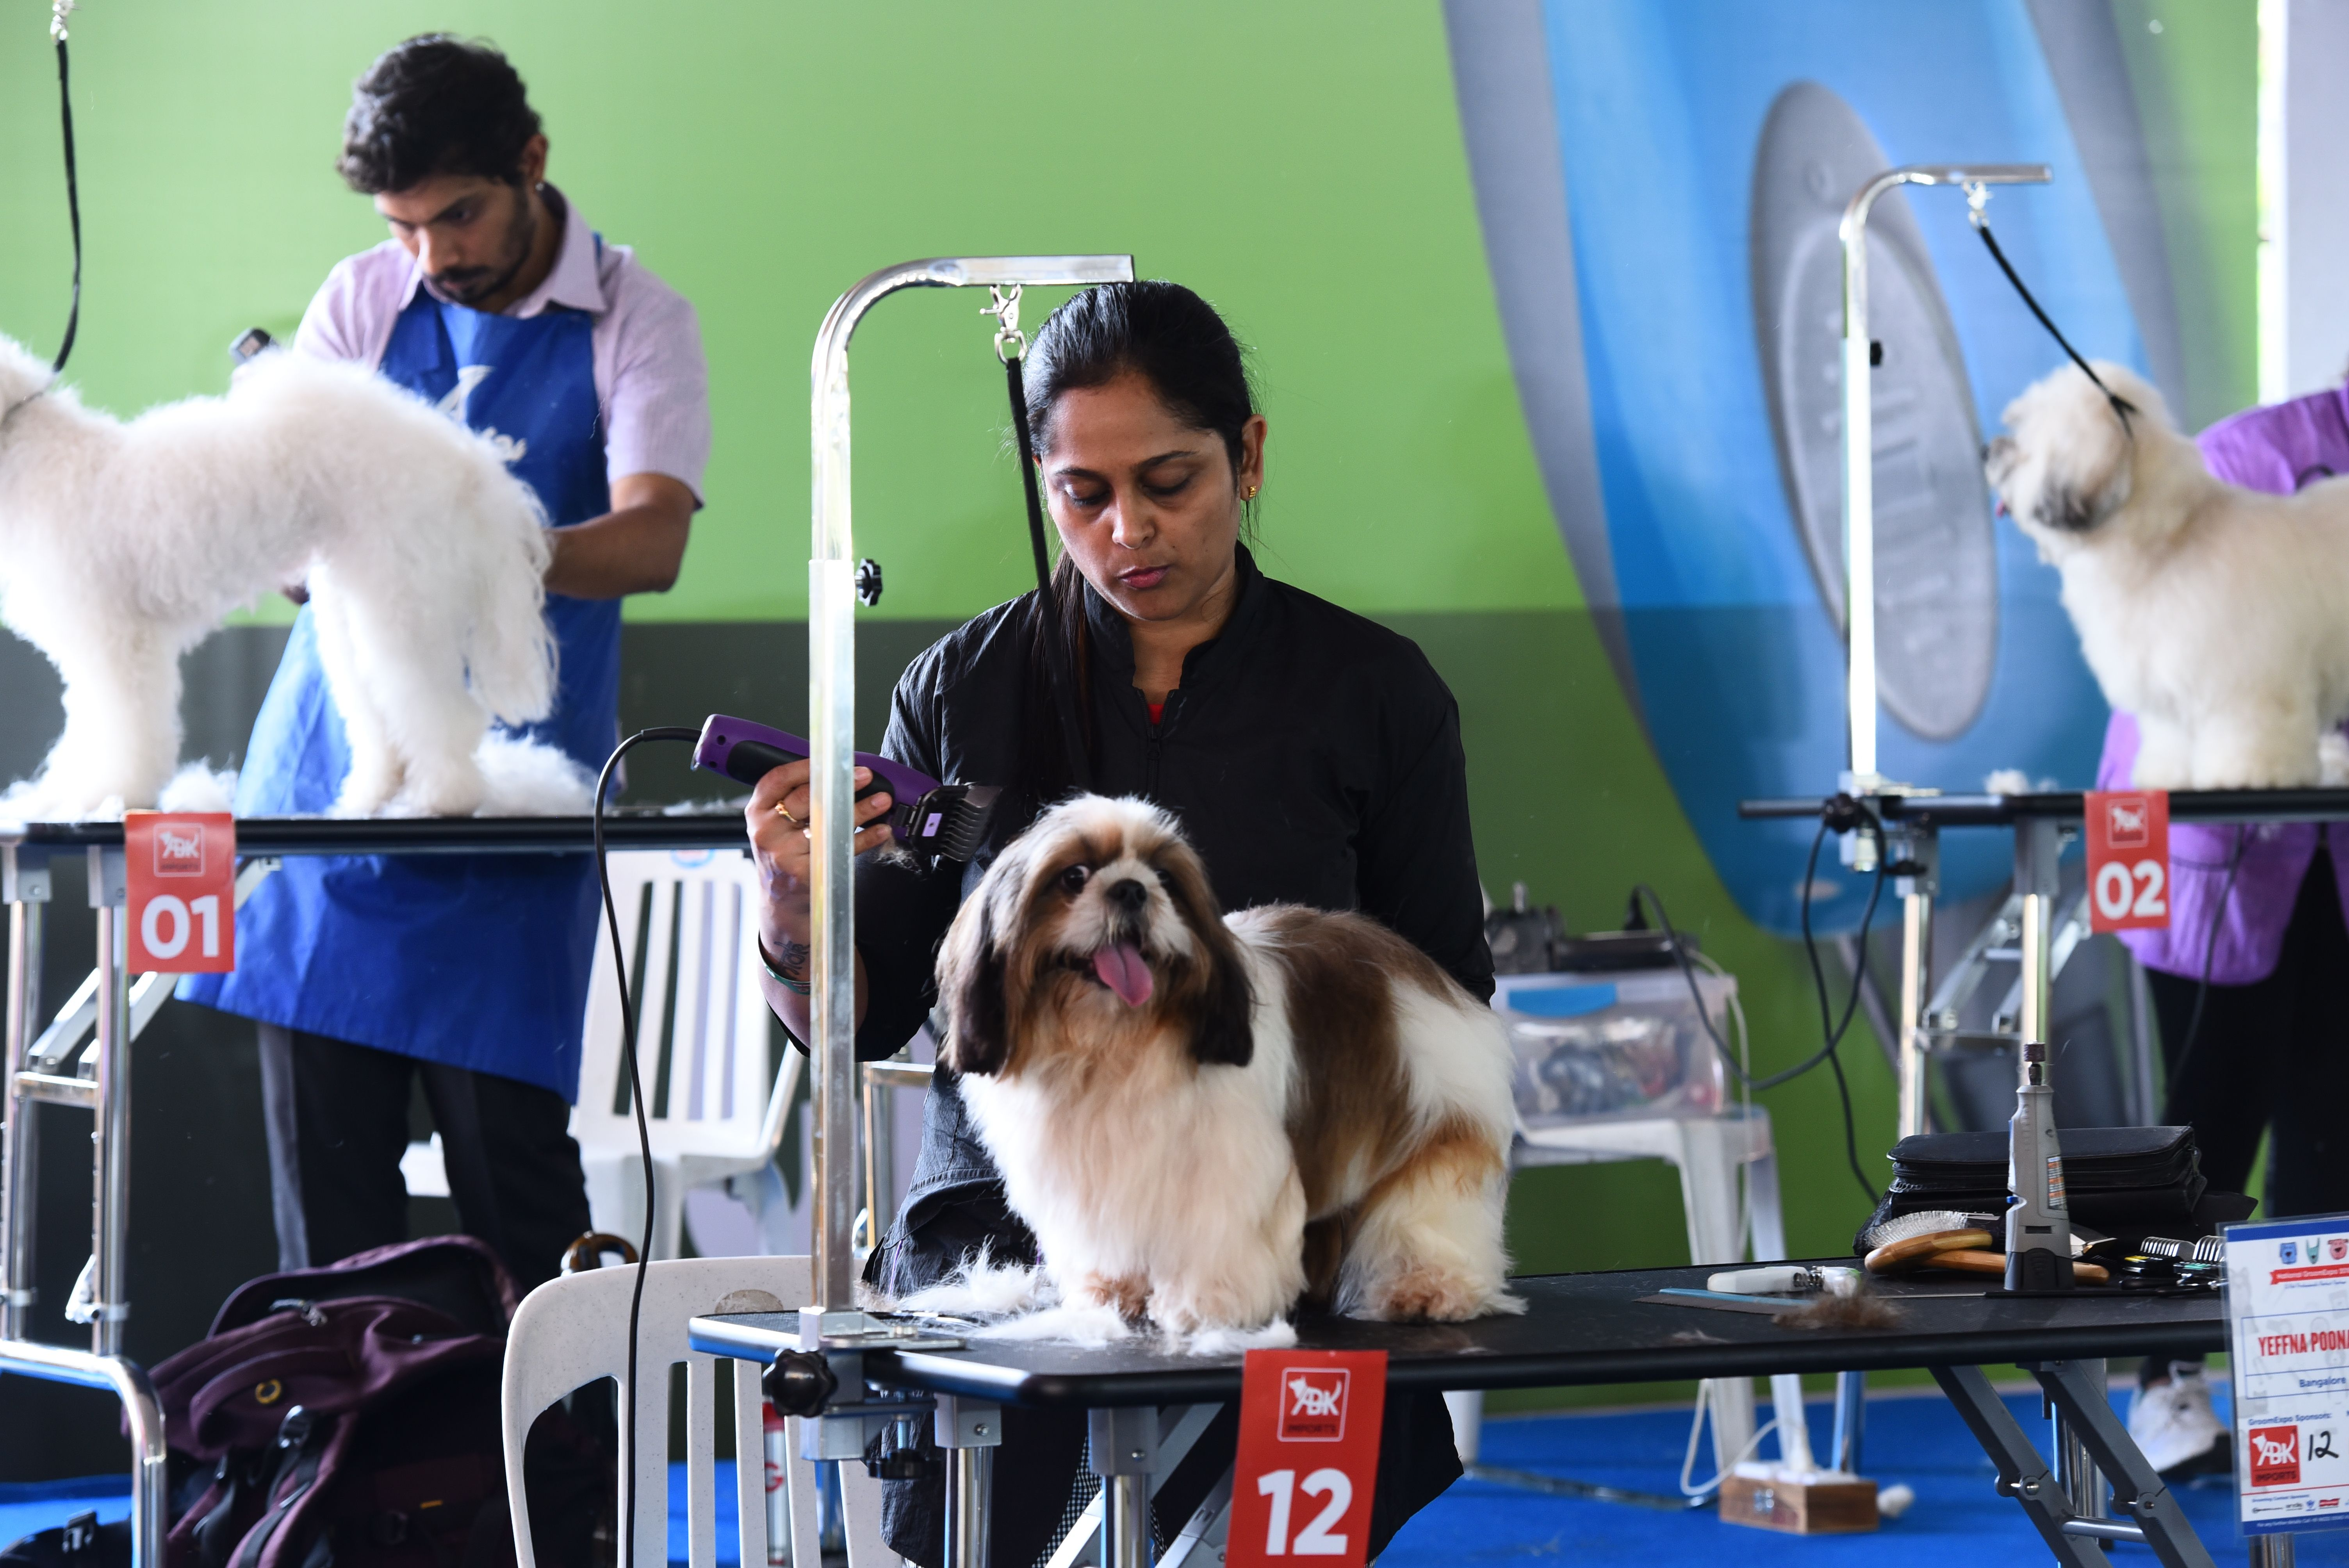 Andis Provide the best dog clippers for home use proudly